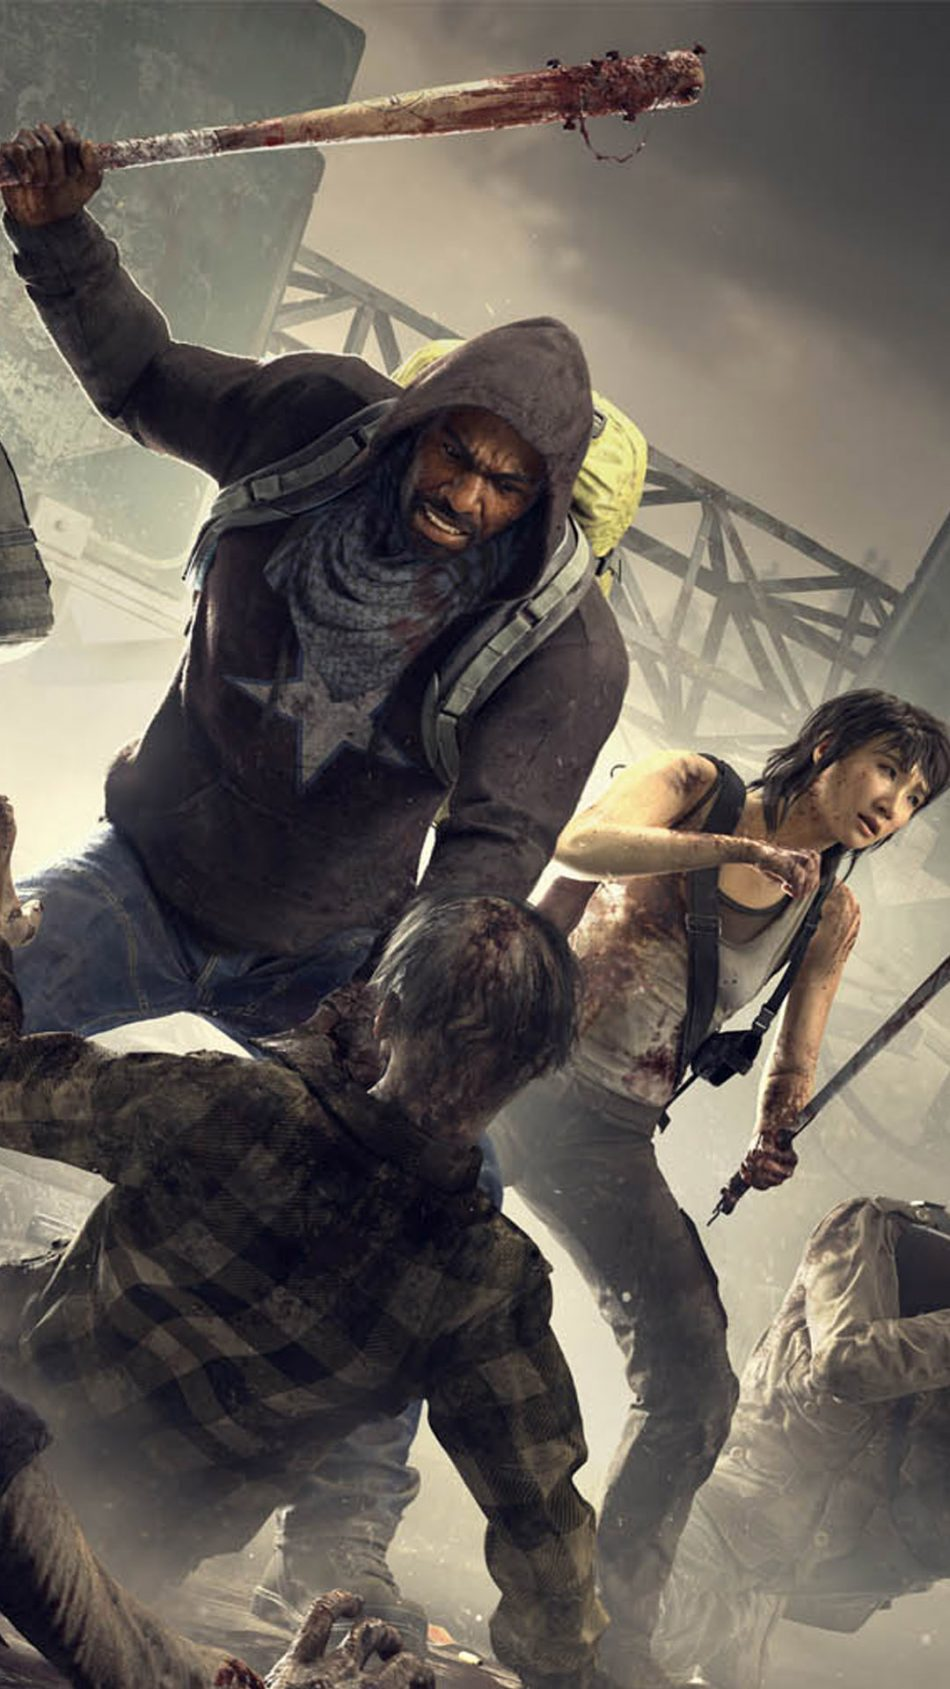 Download Overkill S The Walking Dead Free Pure 4k Ultra Hd Mobile